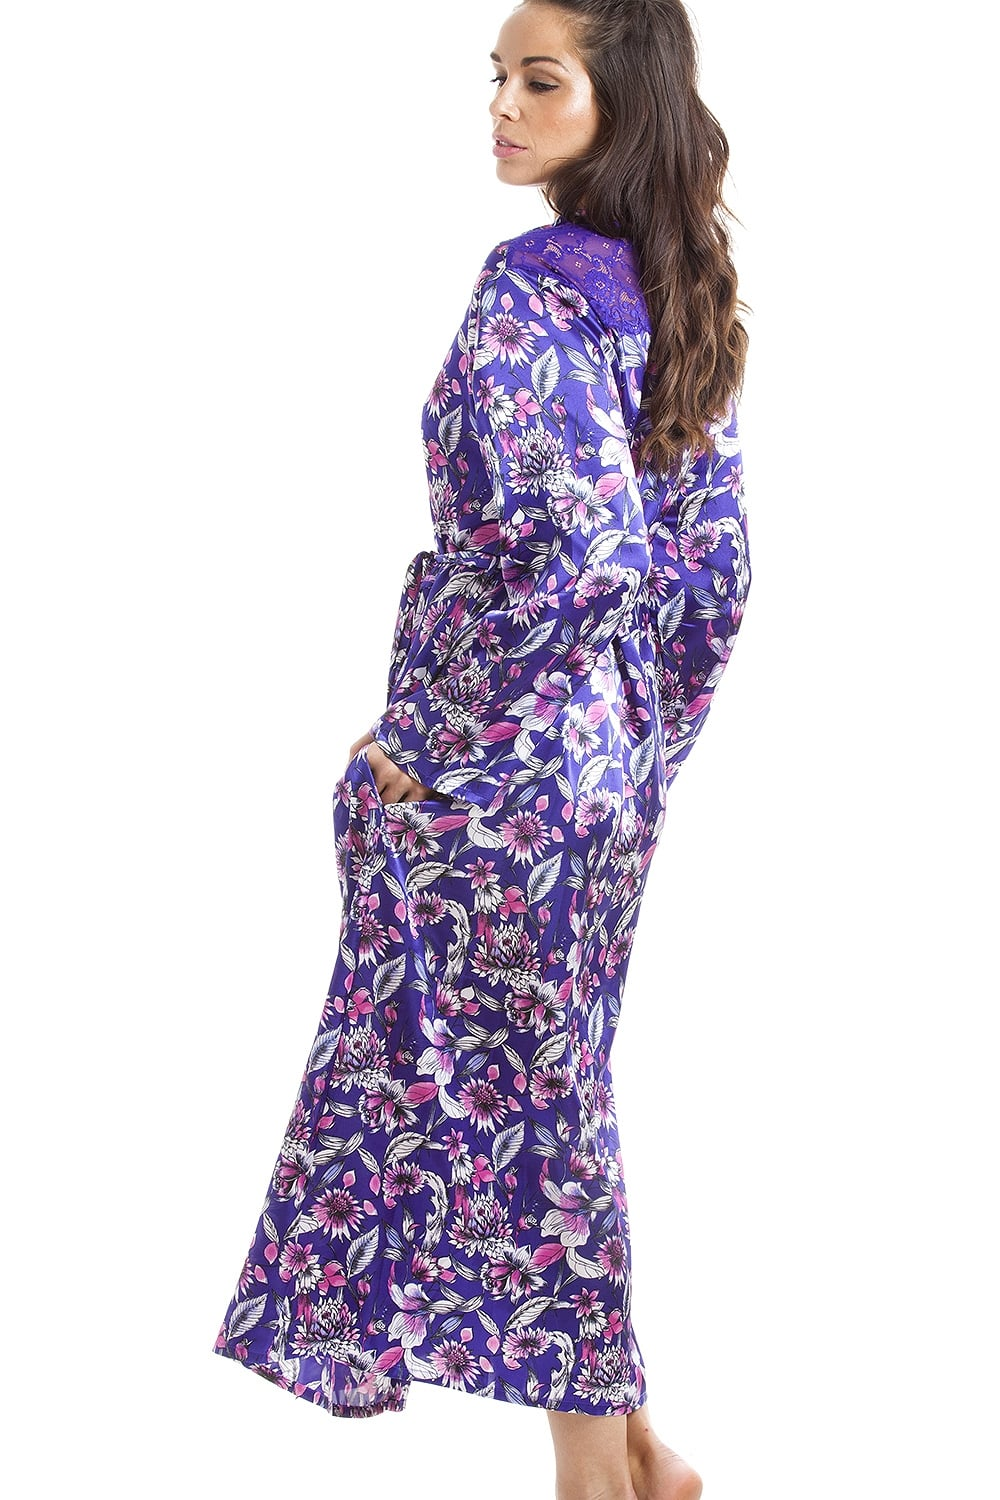 Beautiful Dark Purple Dressing Gown Image - Images for wedding gown ...